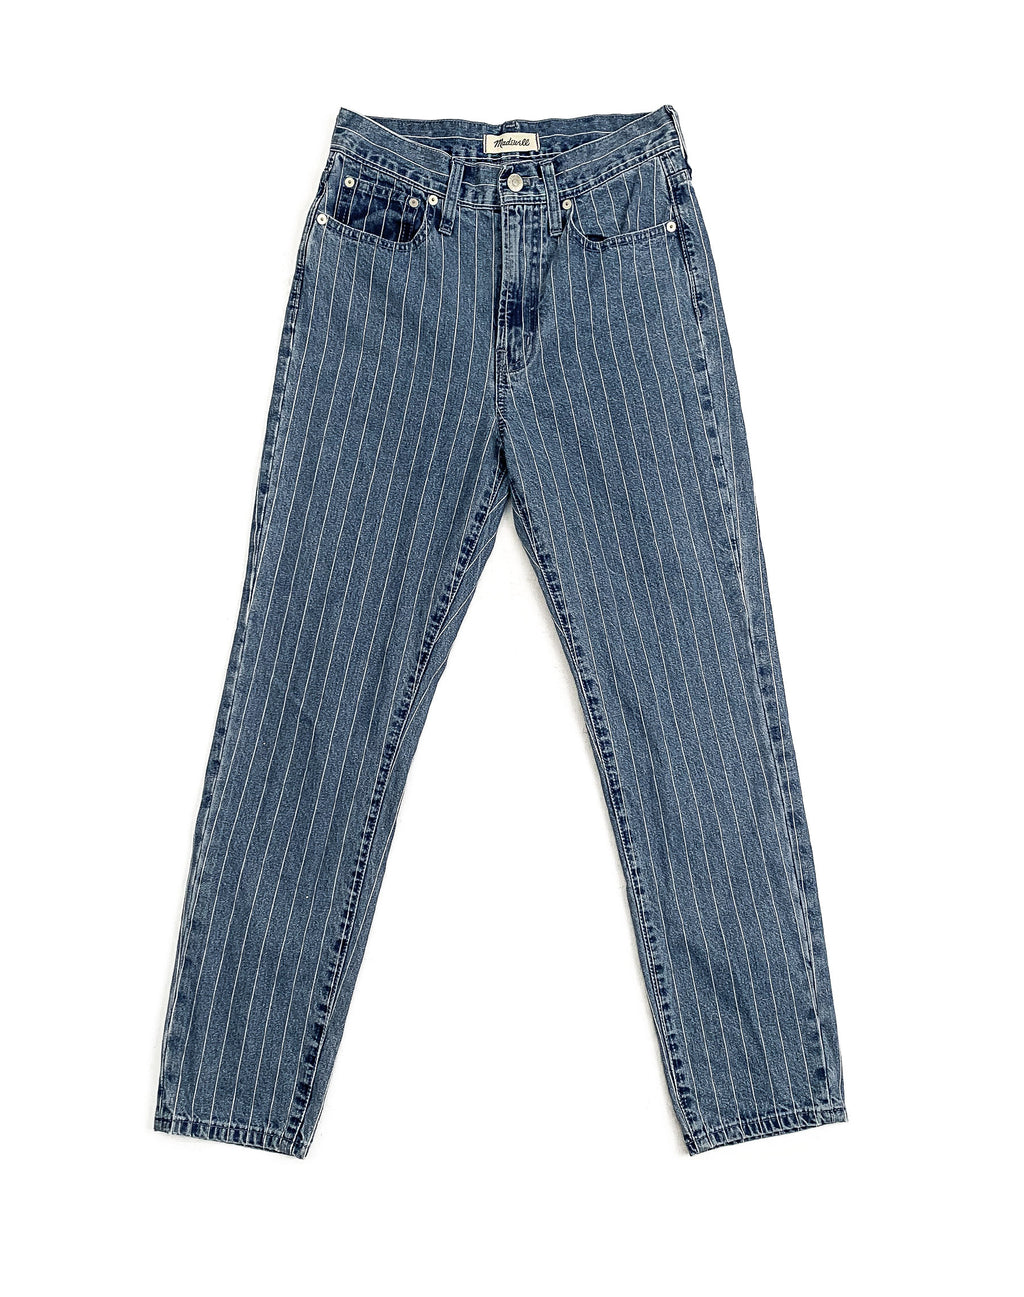 BLUE STRIPE DENIM JEANS